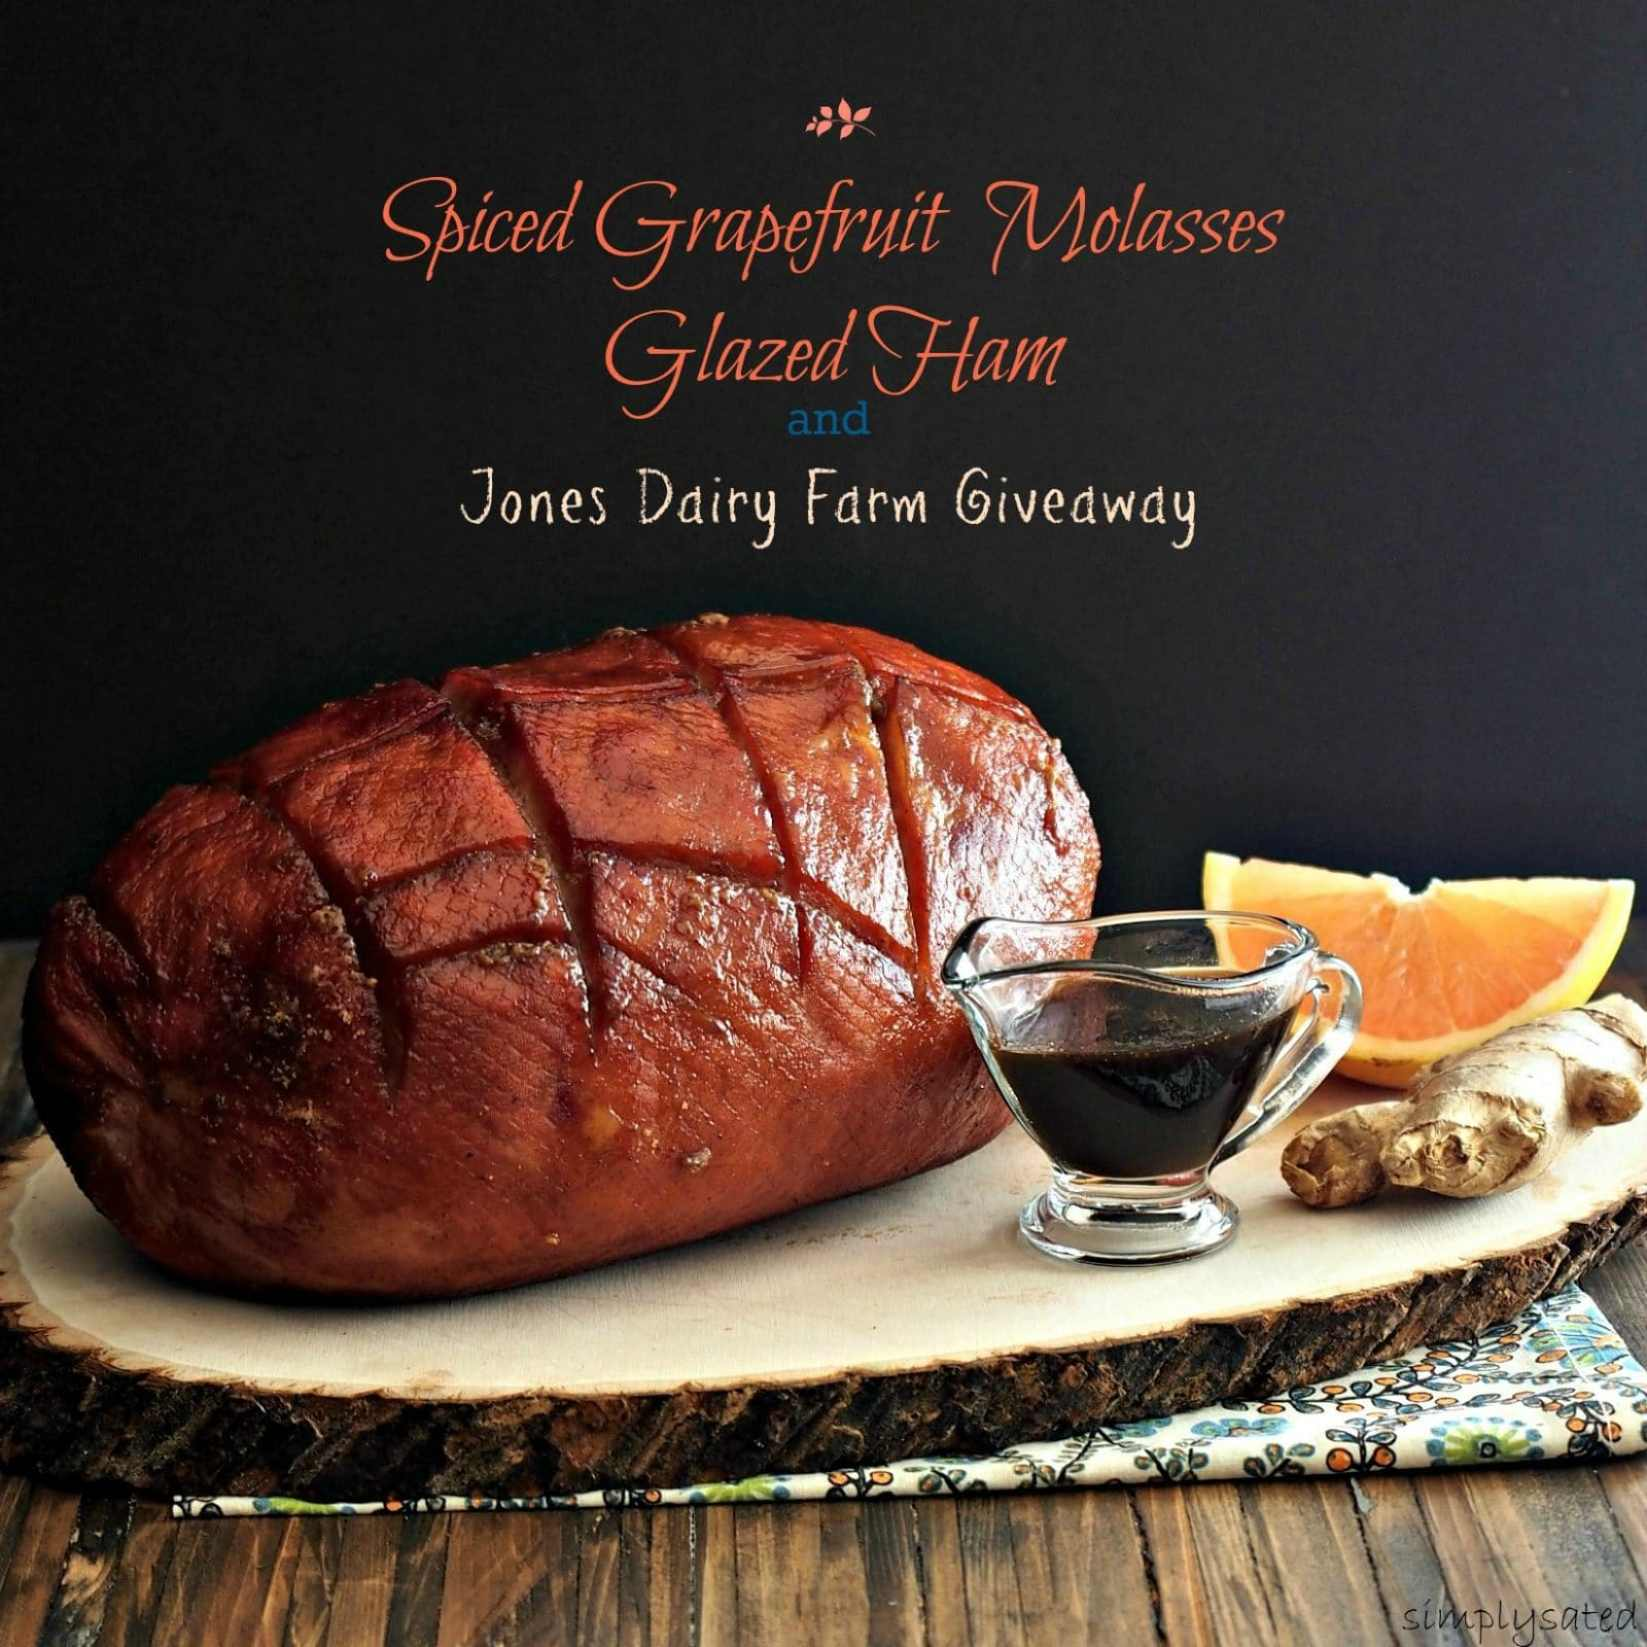 Spiced Grapefruit Molasses Glazed Ham & Jones Dairy Farm Giveaway